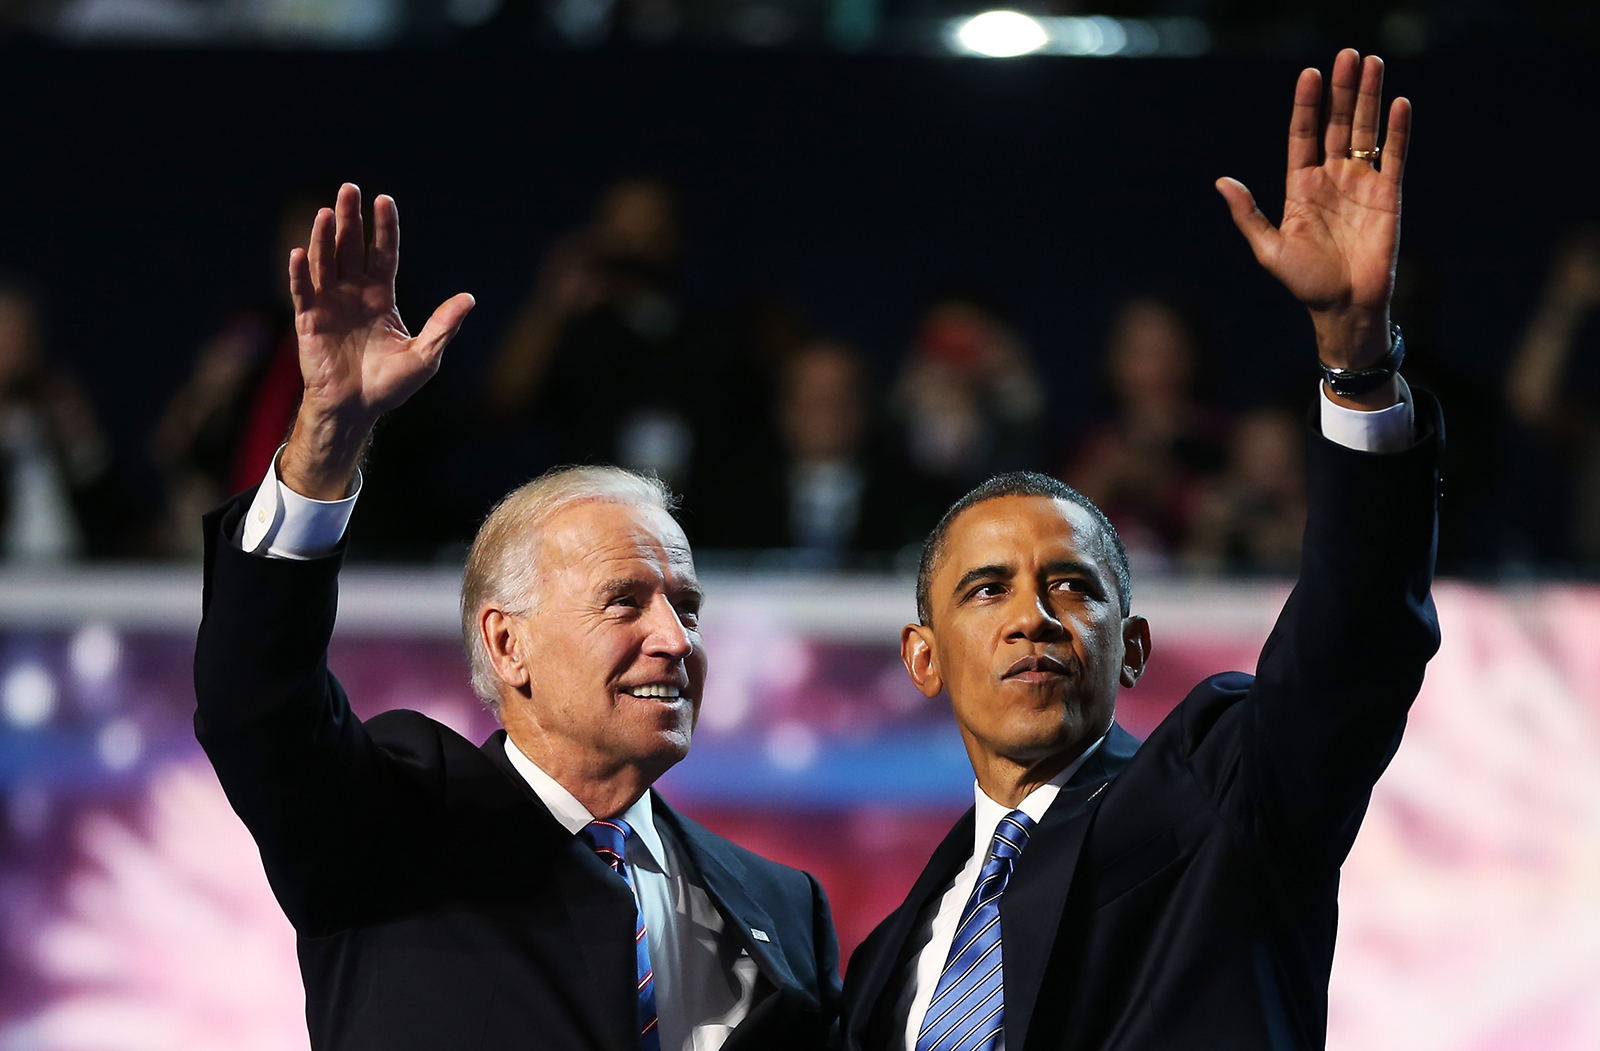 Former President Barack Obama and Vice President Joe Biden wave after accepting the nomination during the final day of the Democratic National Convention at Time Warner Cable Arena on September 6, 2012 in Charlotte, North Carolina.